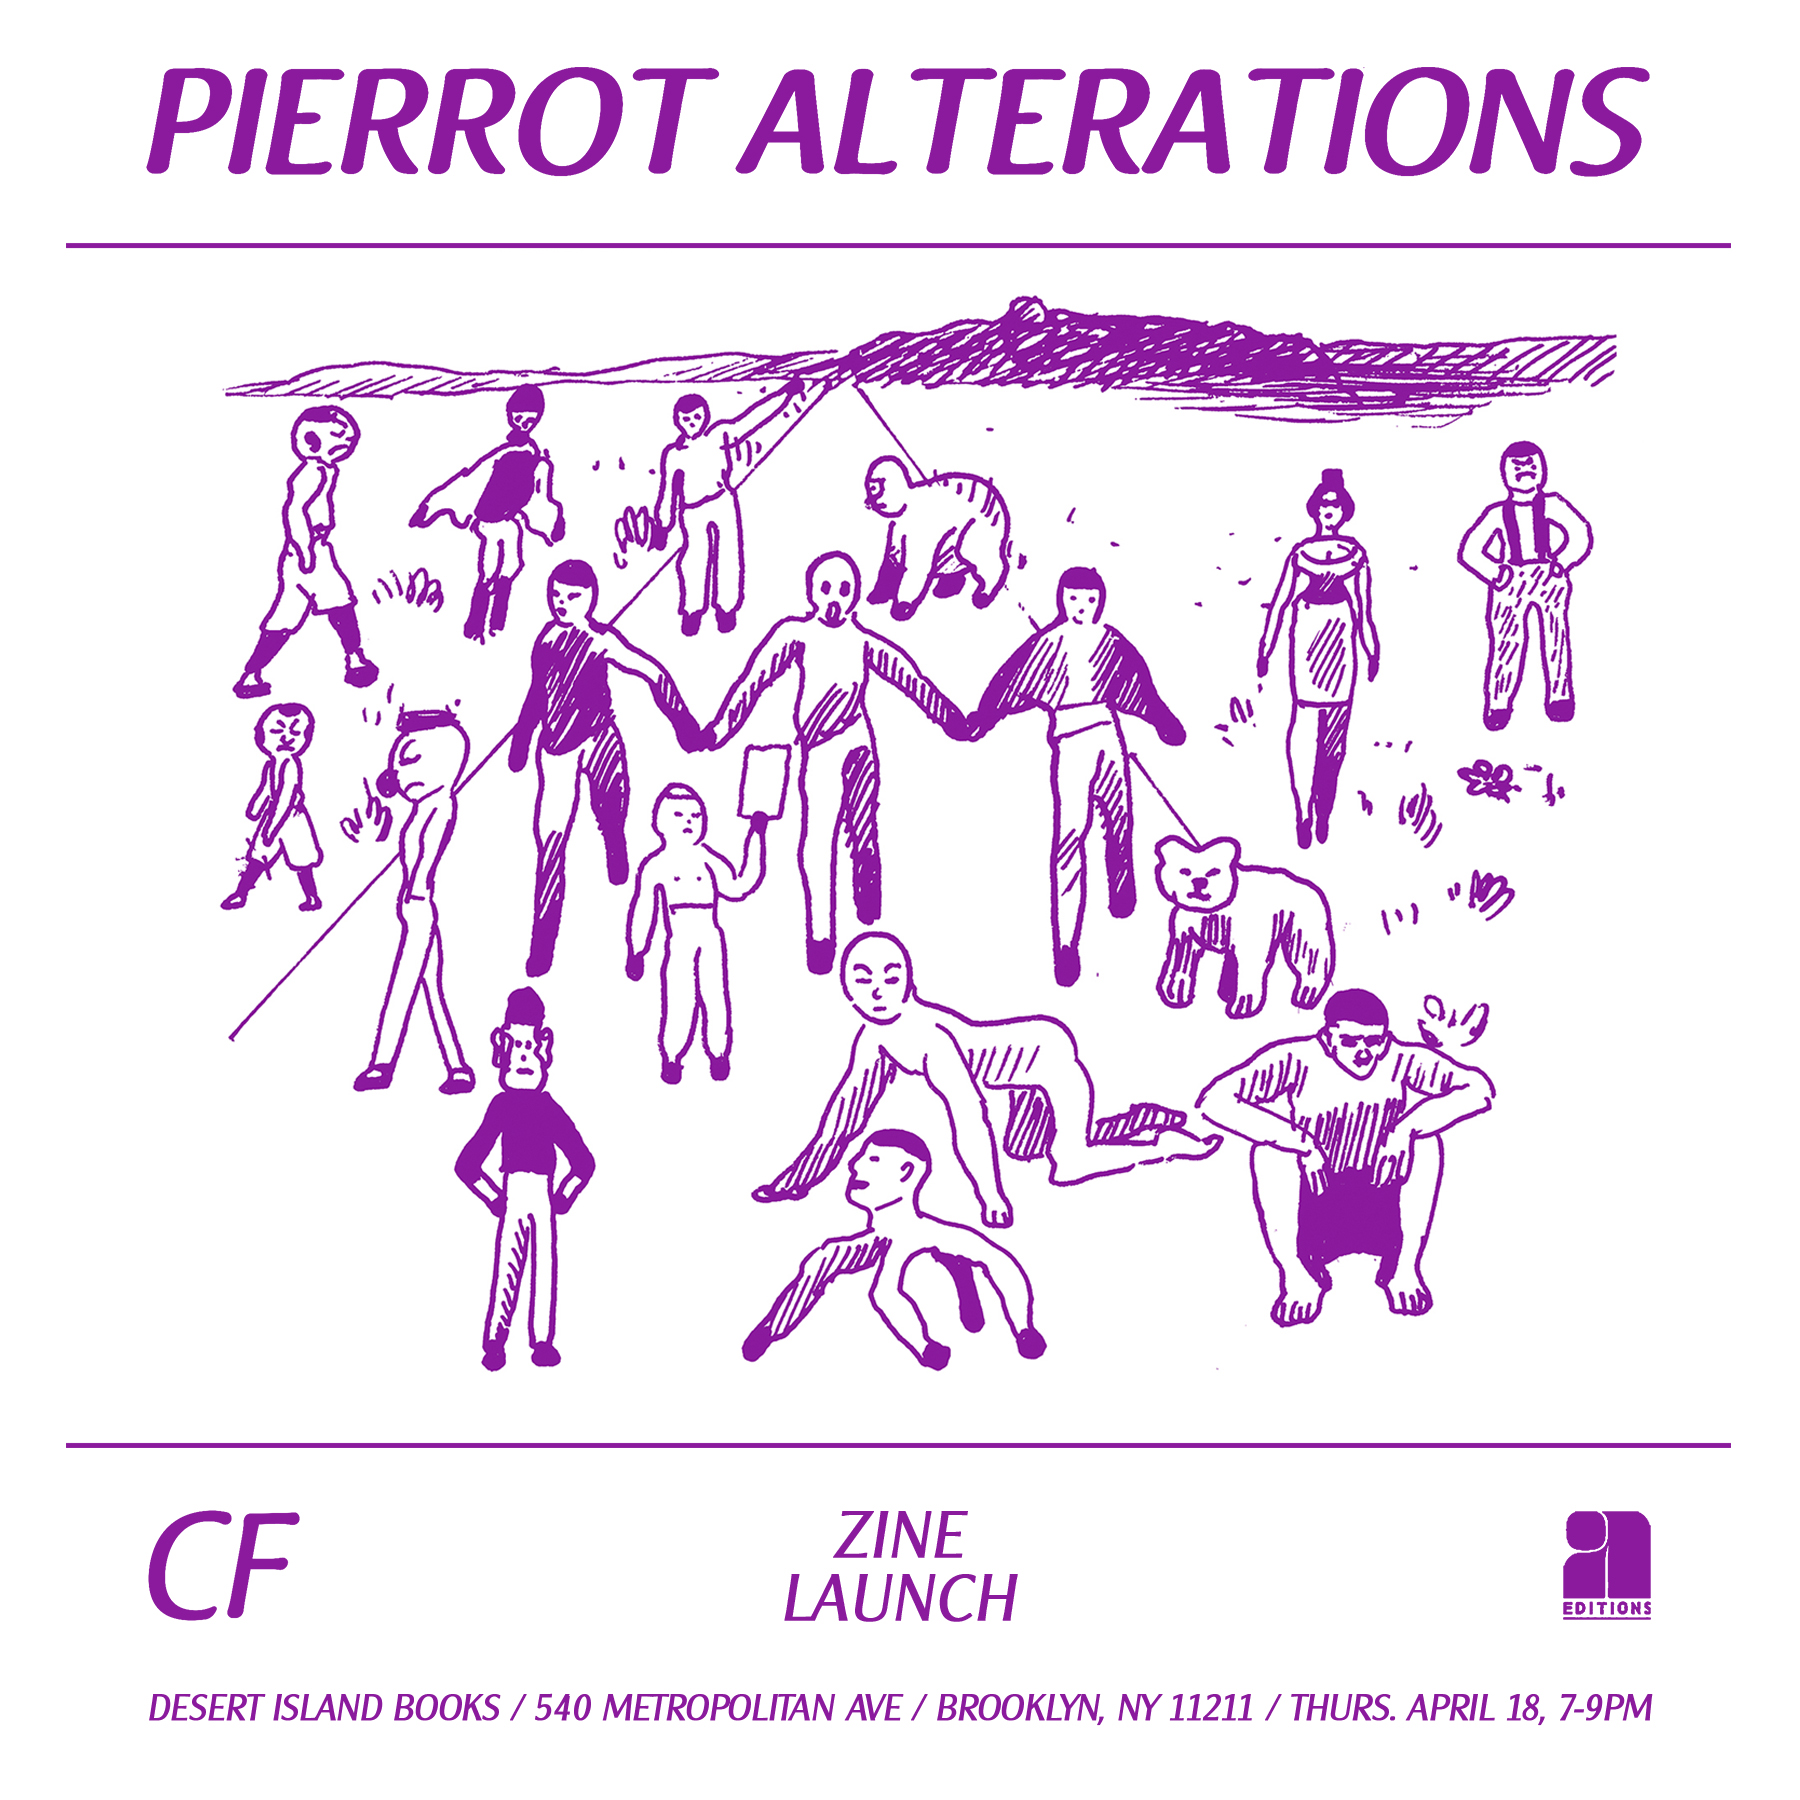 CF Pierrot Alterations Desert Island Comics Zine Launch Poster